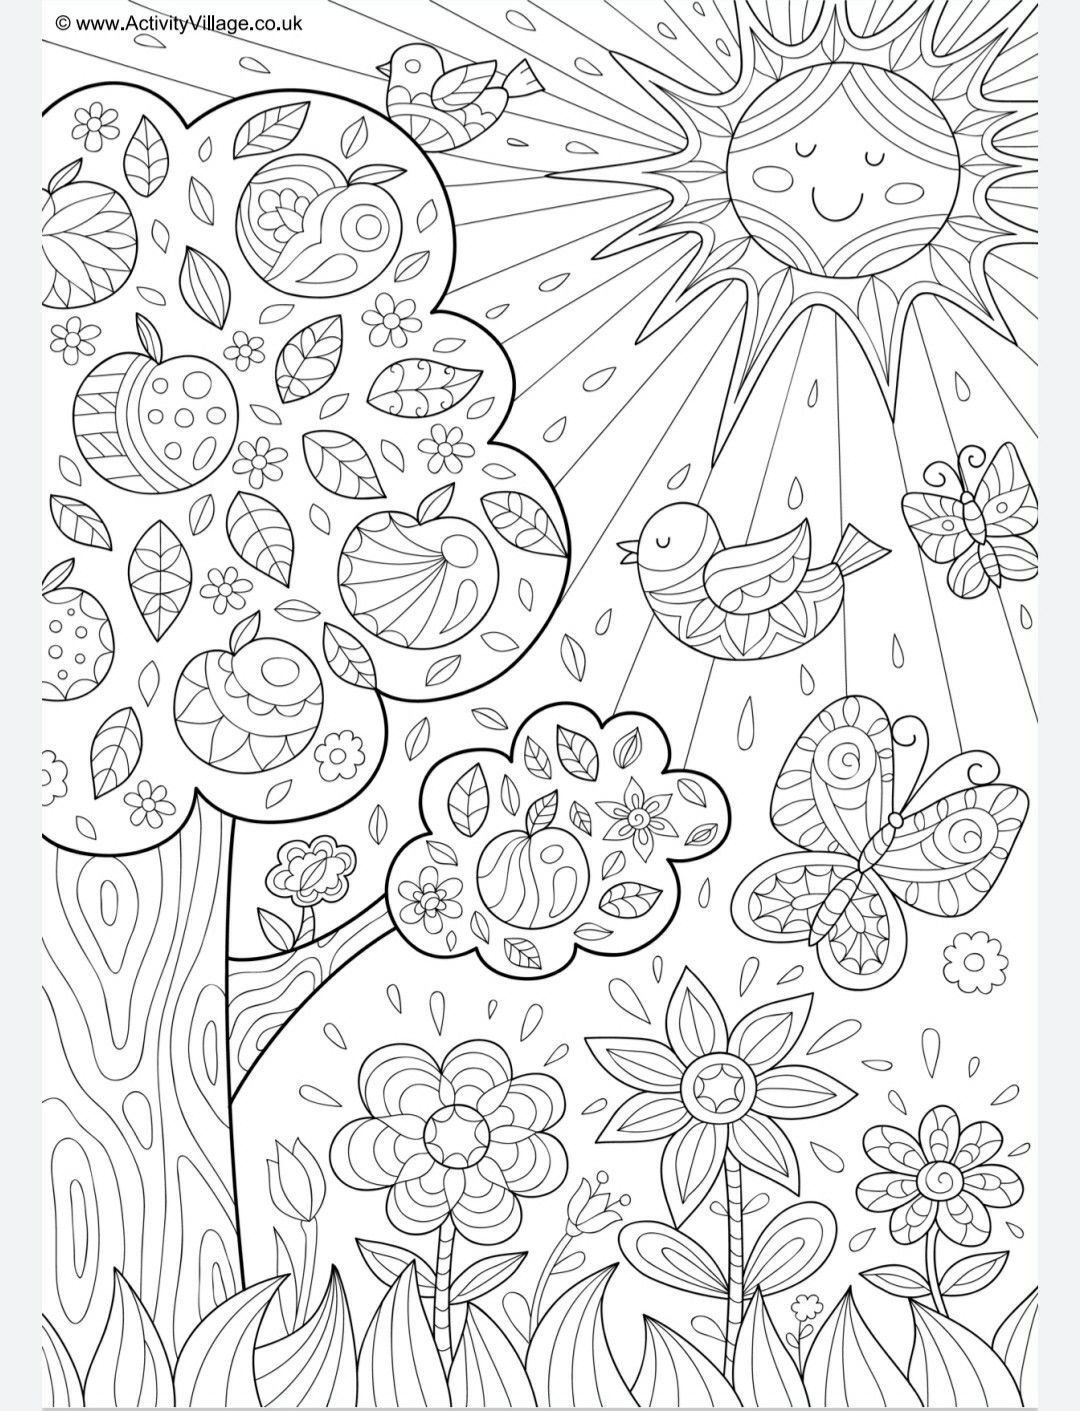 Free Printable Elsa Coloring Pages For Kids Best Coloring Pages For Kids Elsa Coloring Pages Disney Coloring Pages Disney Princess Coloring Pages